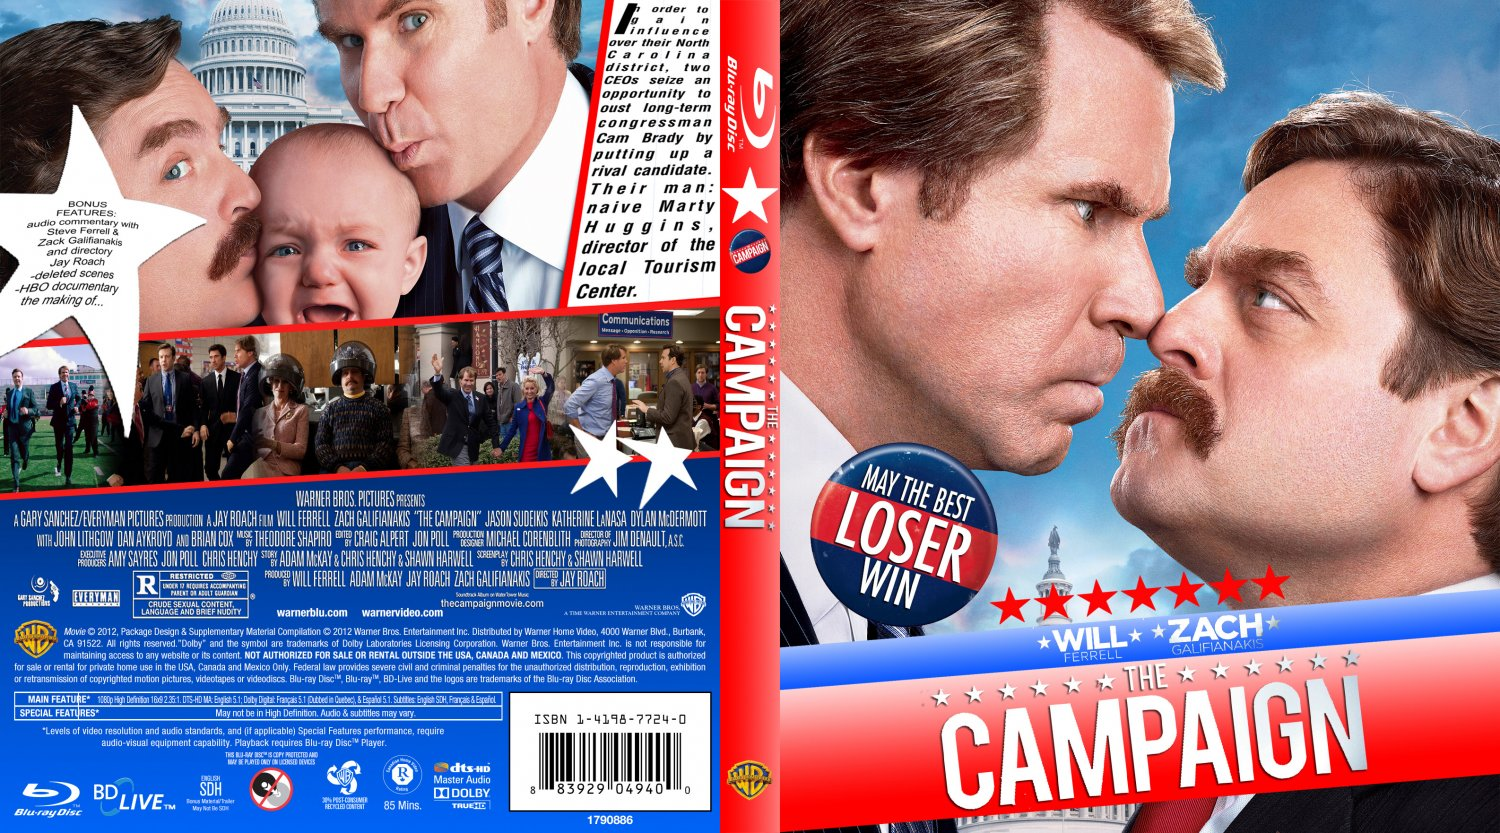 The Campaign - Movie Blu-Ray Custom Covers - The Campaign ...